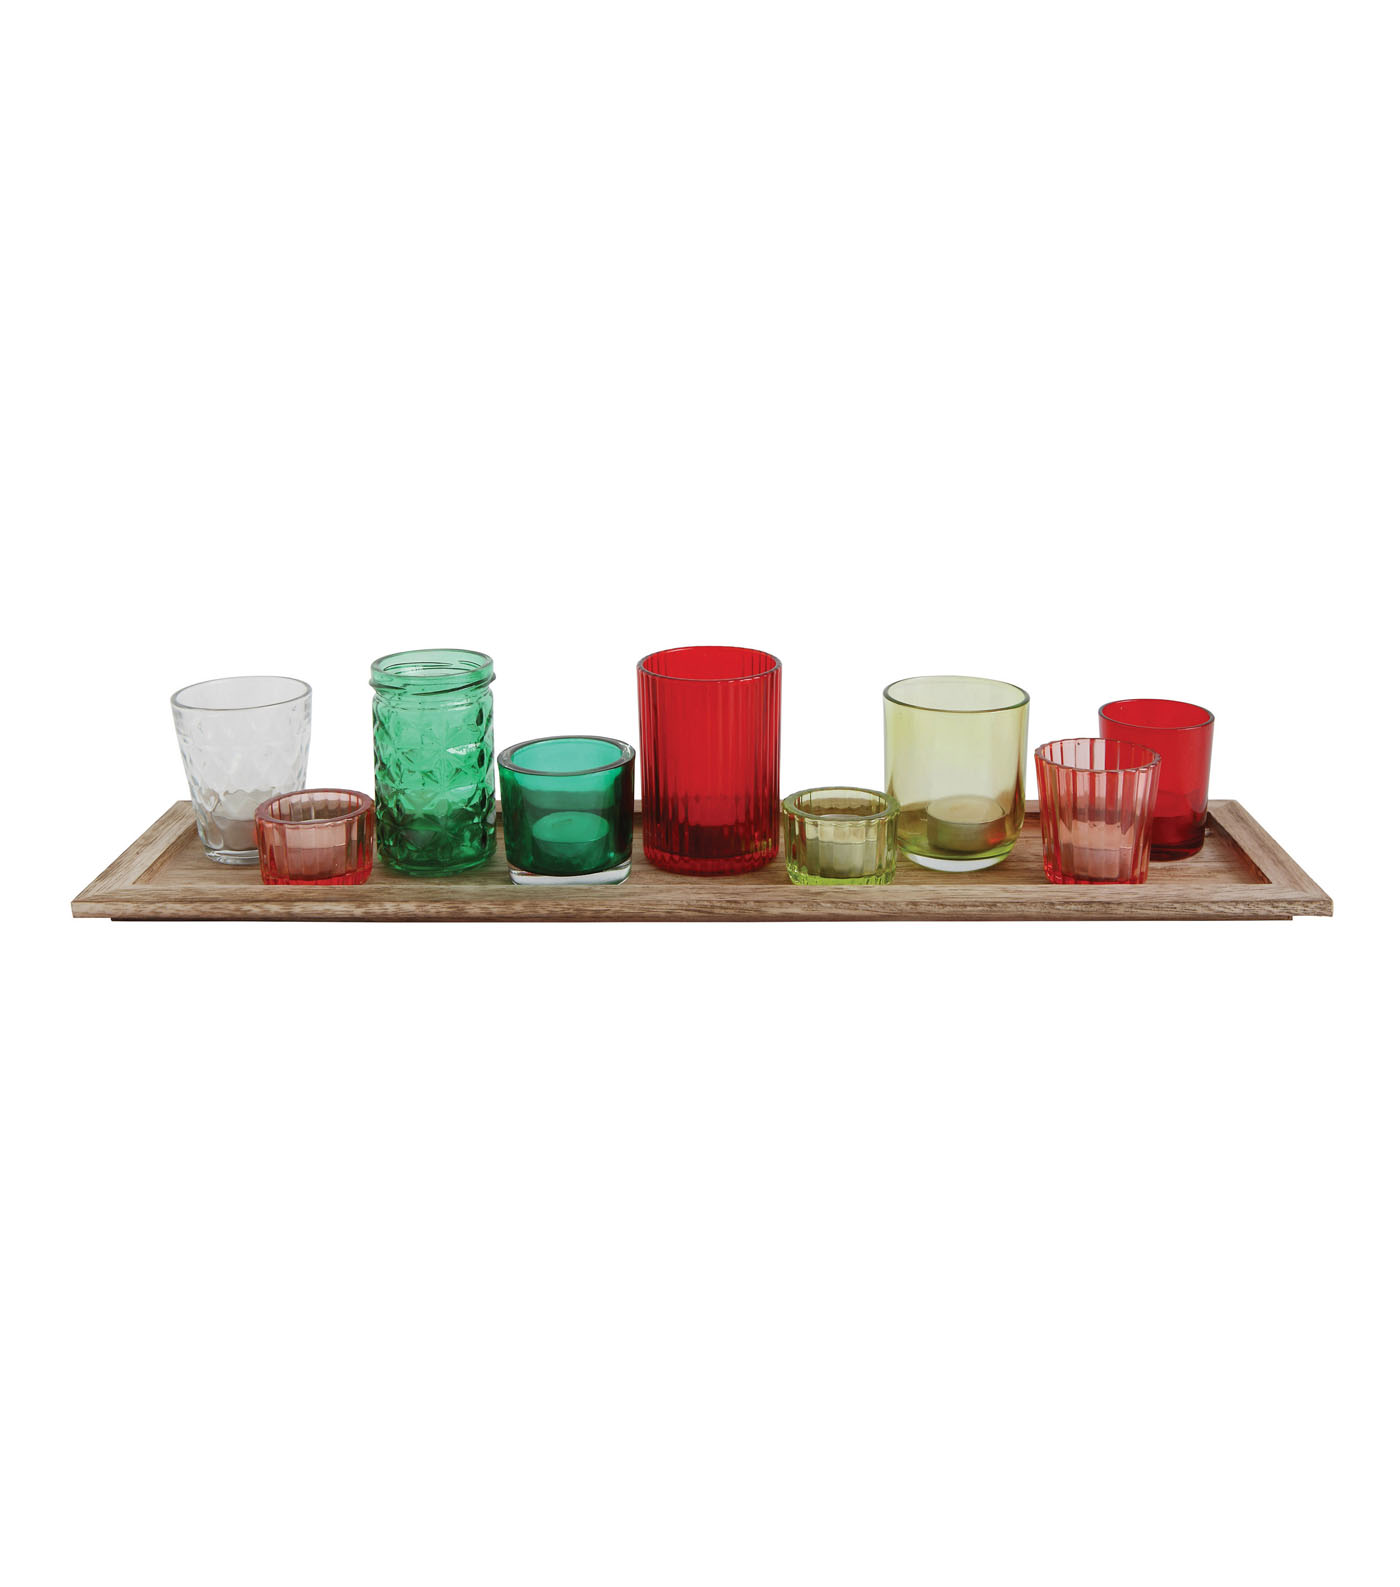 3R Studios Christmas Wood Tray with Glass Votive Holders